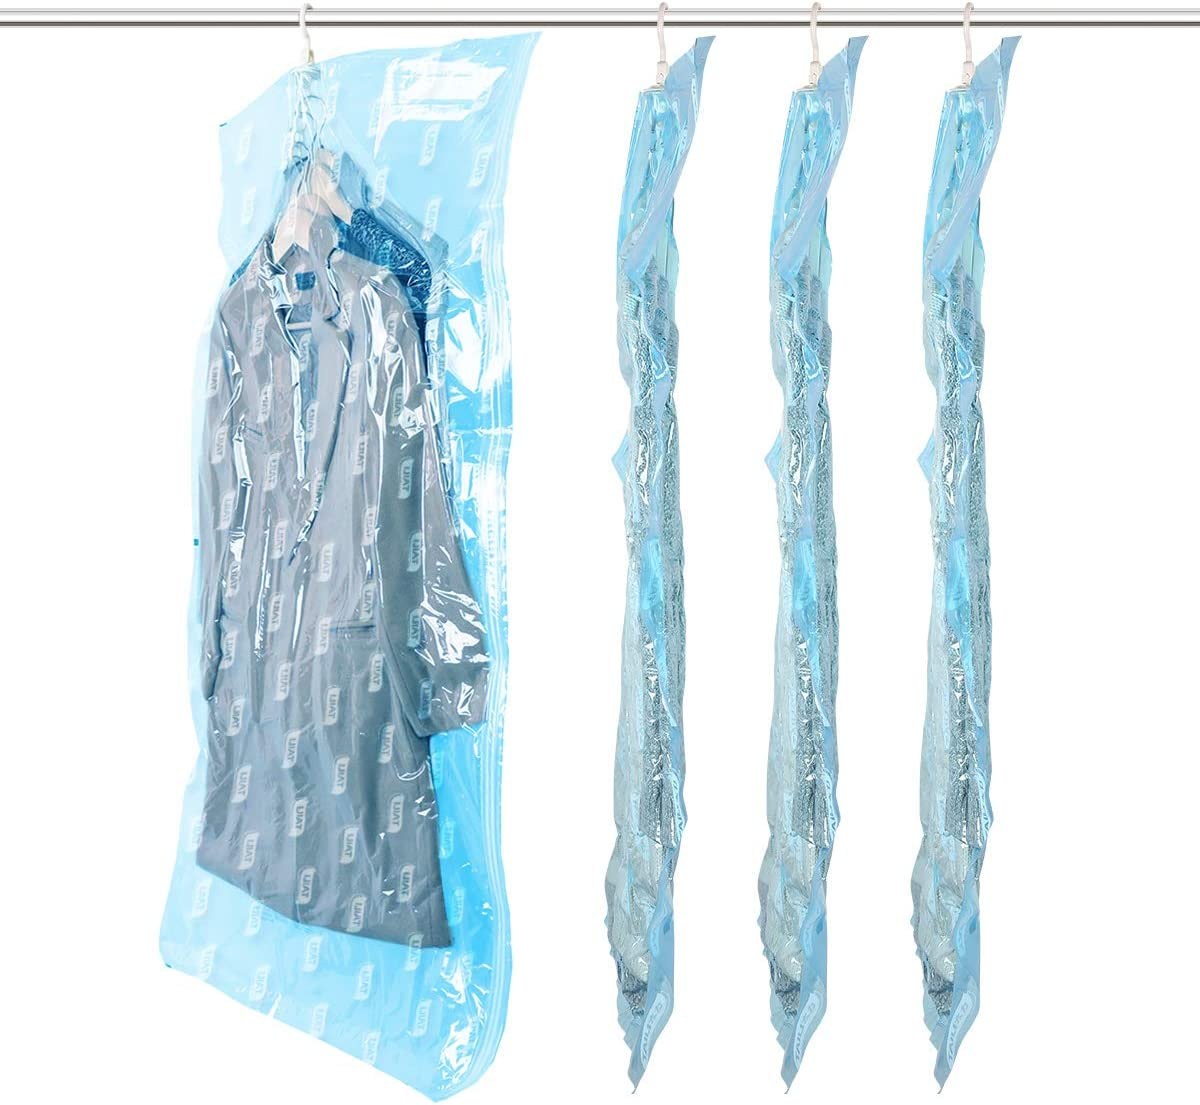 """TAILI Hanging Vacuum Storage Bags for Clothes 4 Pack Extra Large Vacuum Garments Space Saver Bags Hold 20pcs Coats, Suits, Long Dress and Jackets, Top Vacuum Closet Organizer Bags 53""""x27.6"""""""